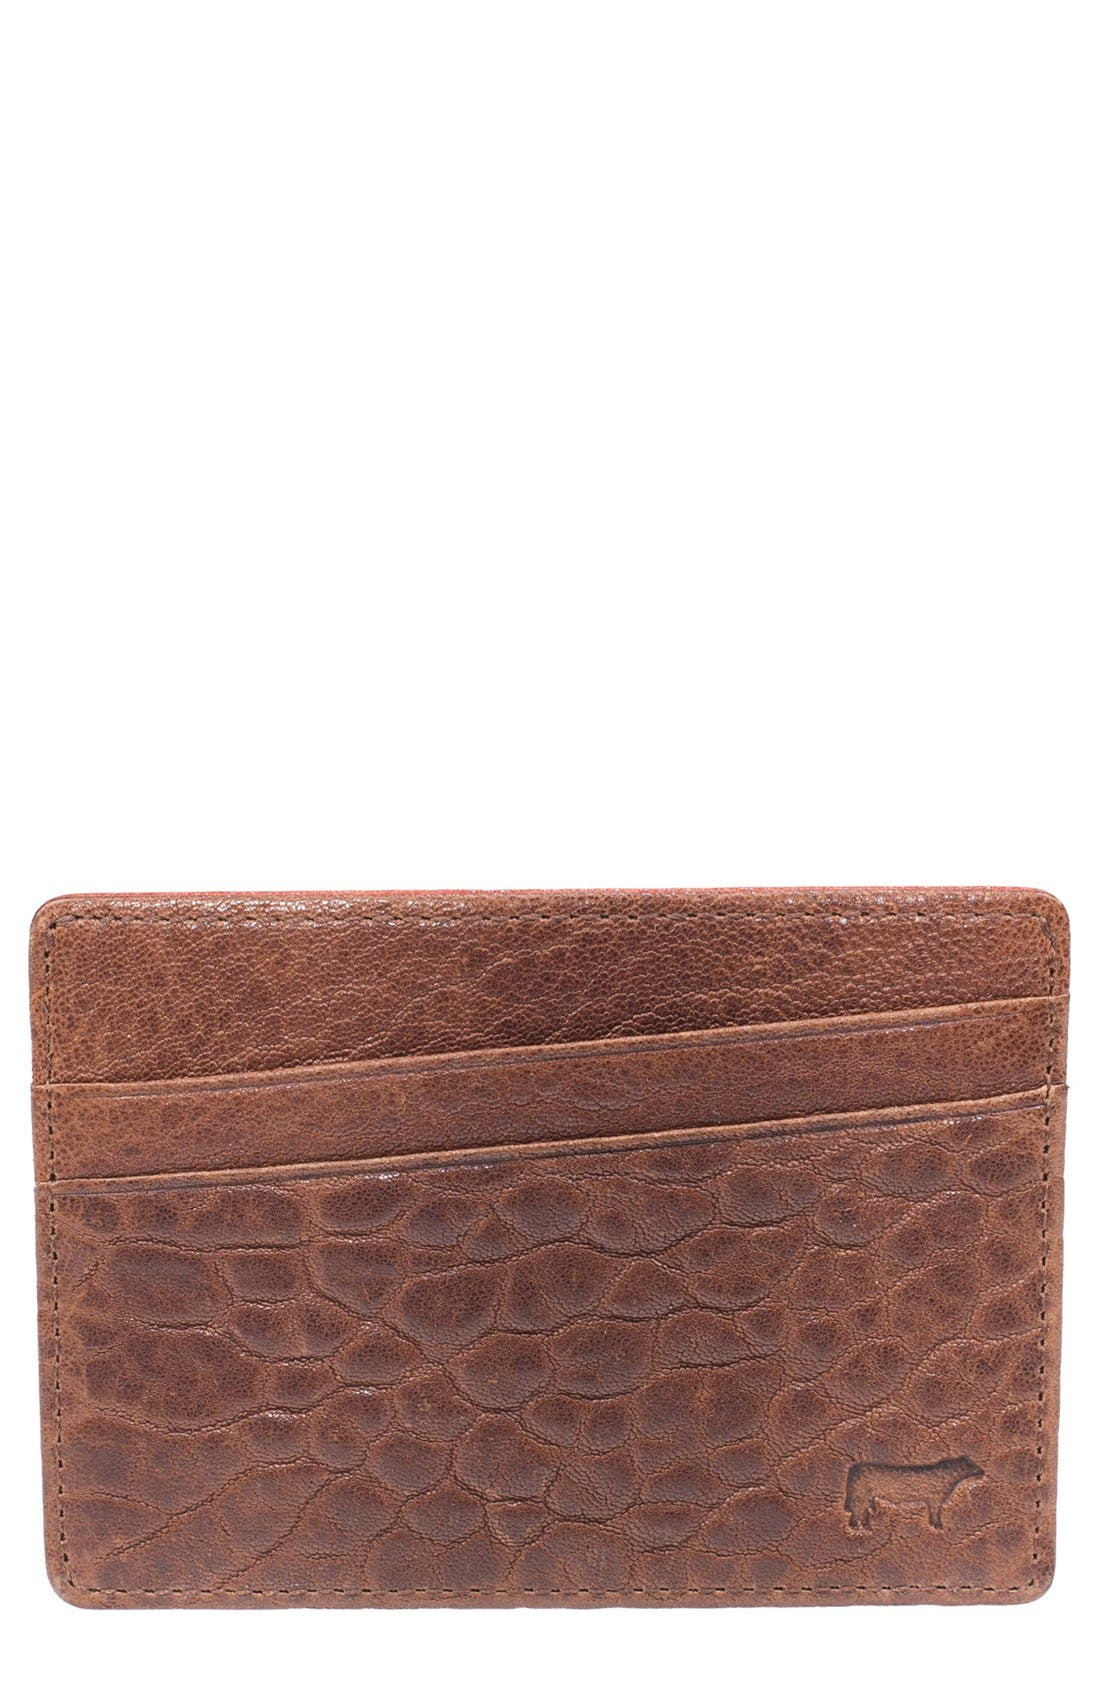 WILL LEATHER GOODS Quip Leather Card Case